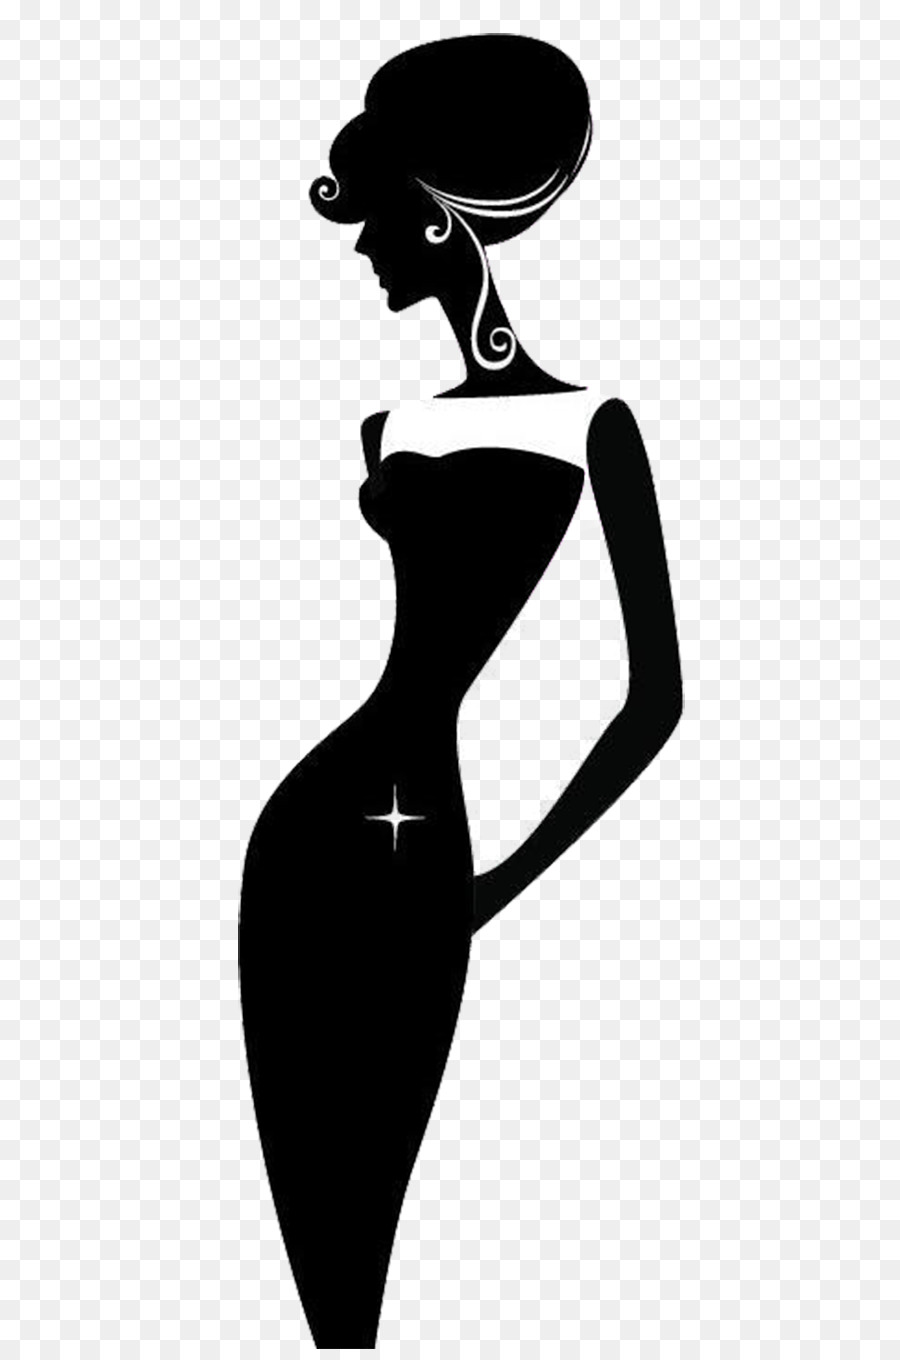 Free black and white silhouette clipart clip art freeuse Black And White Silhouette Woman at GetDrawings.com | Free for ... clip art freeuse